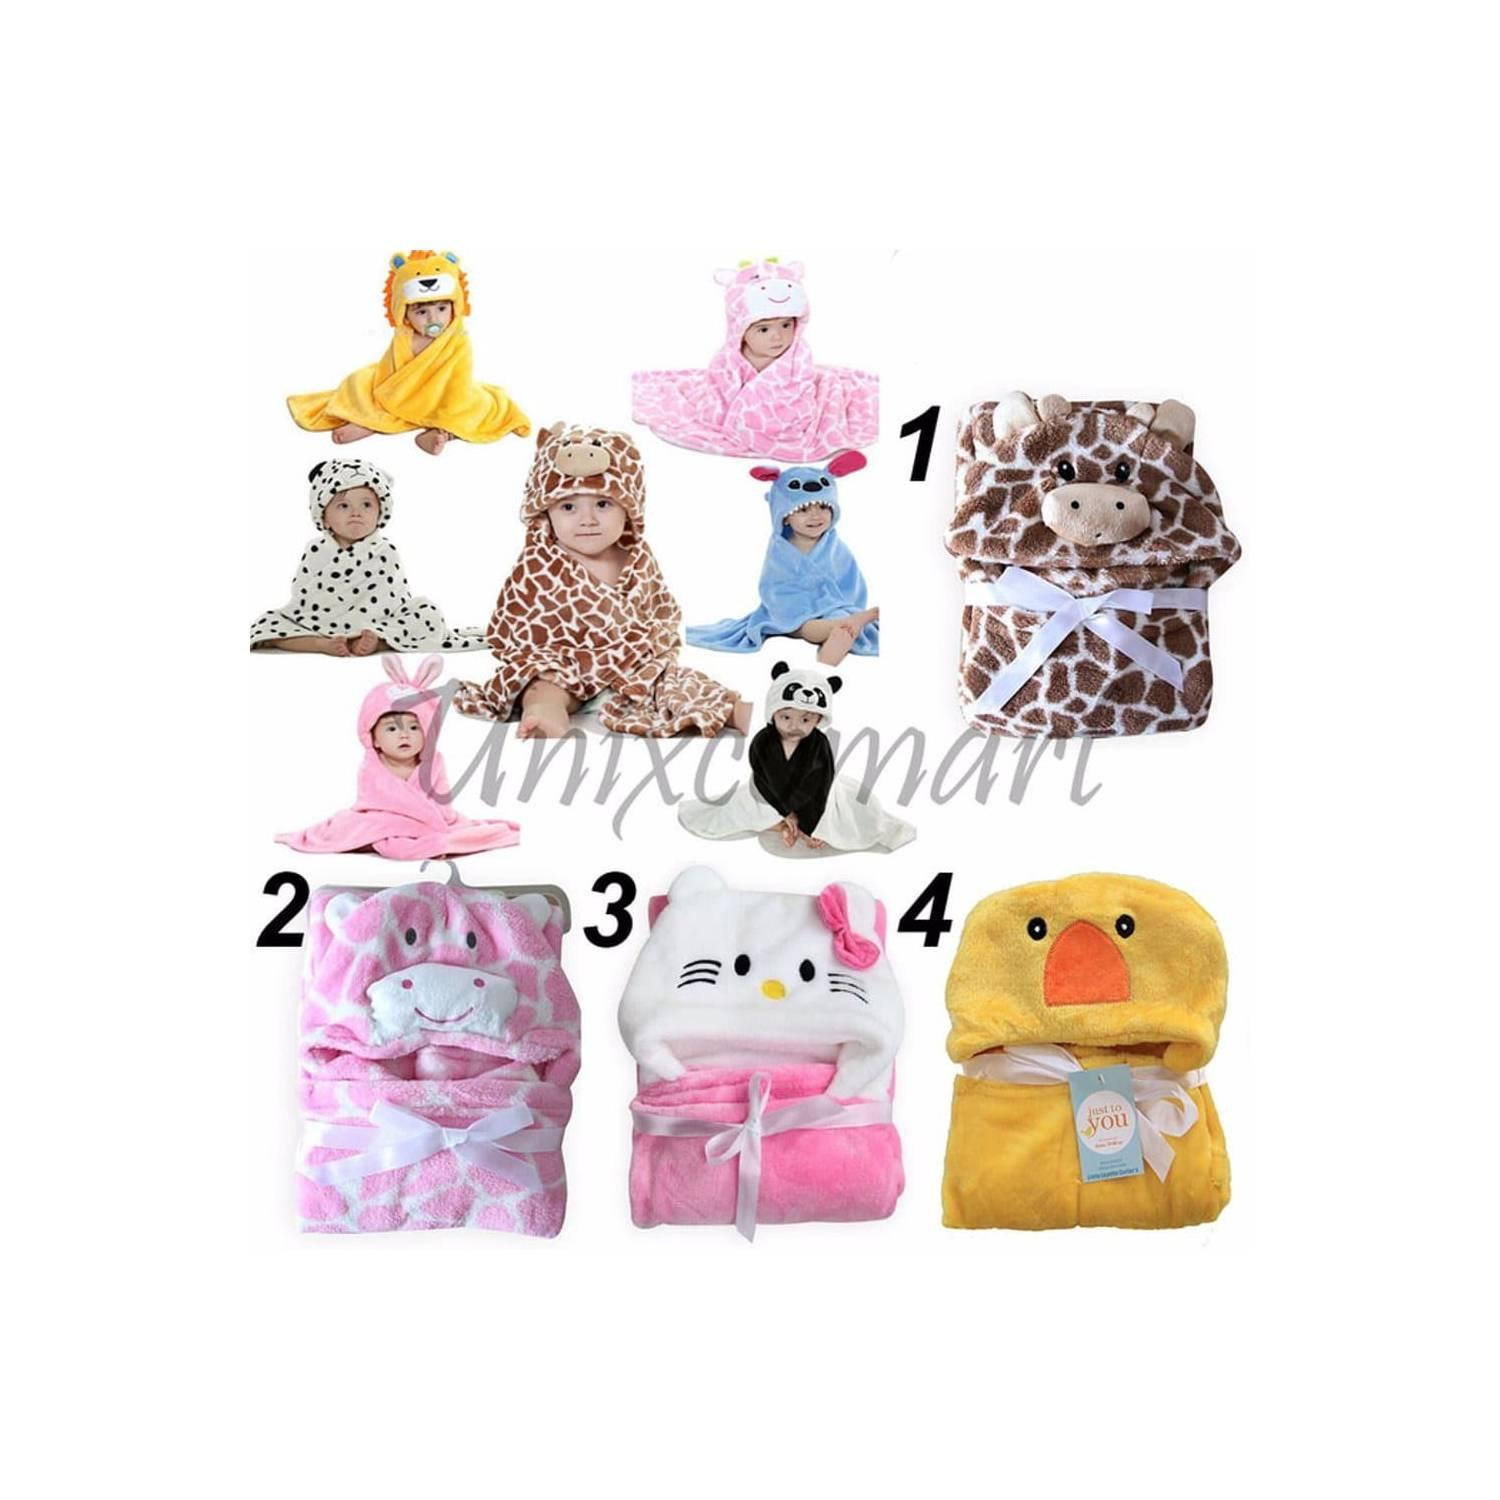 LIMITED EDITION Selimut Bayi Topi 3d Carter s Harga Promo EXCLUSIVE